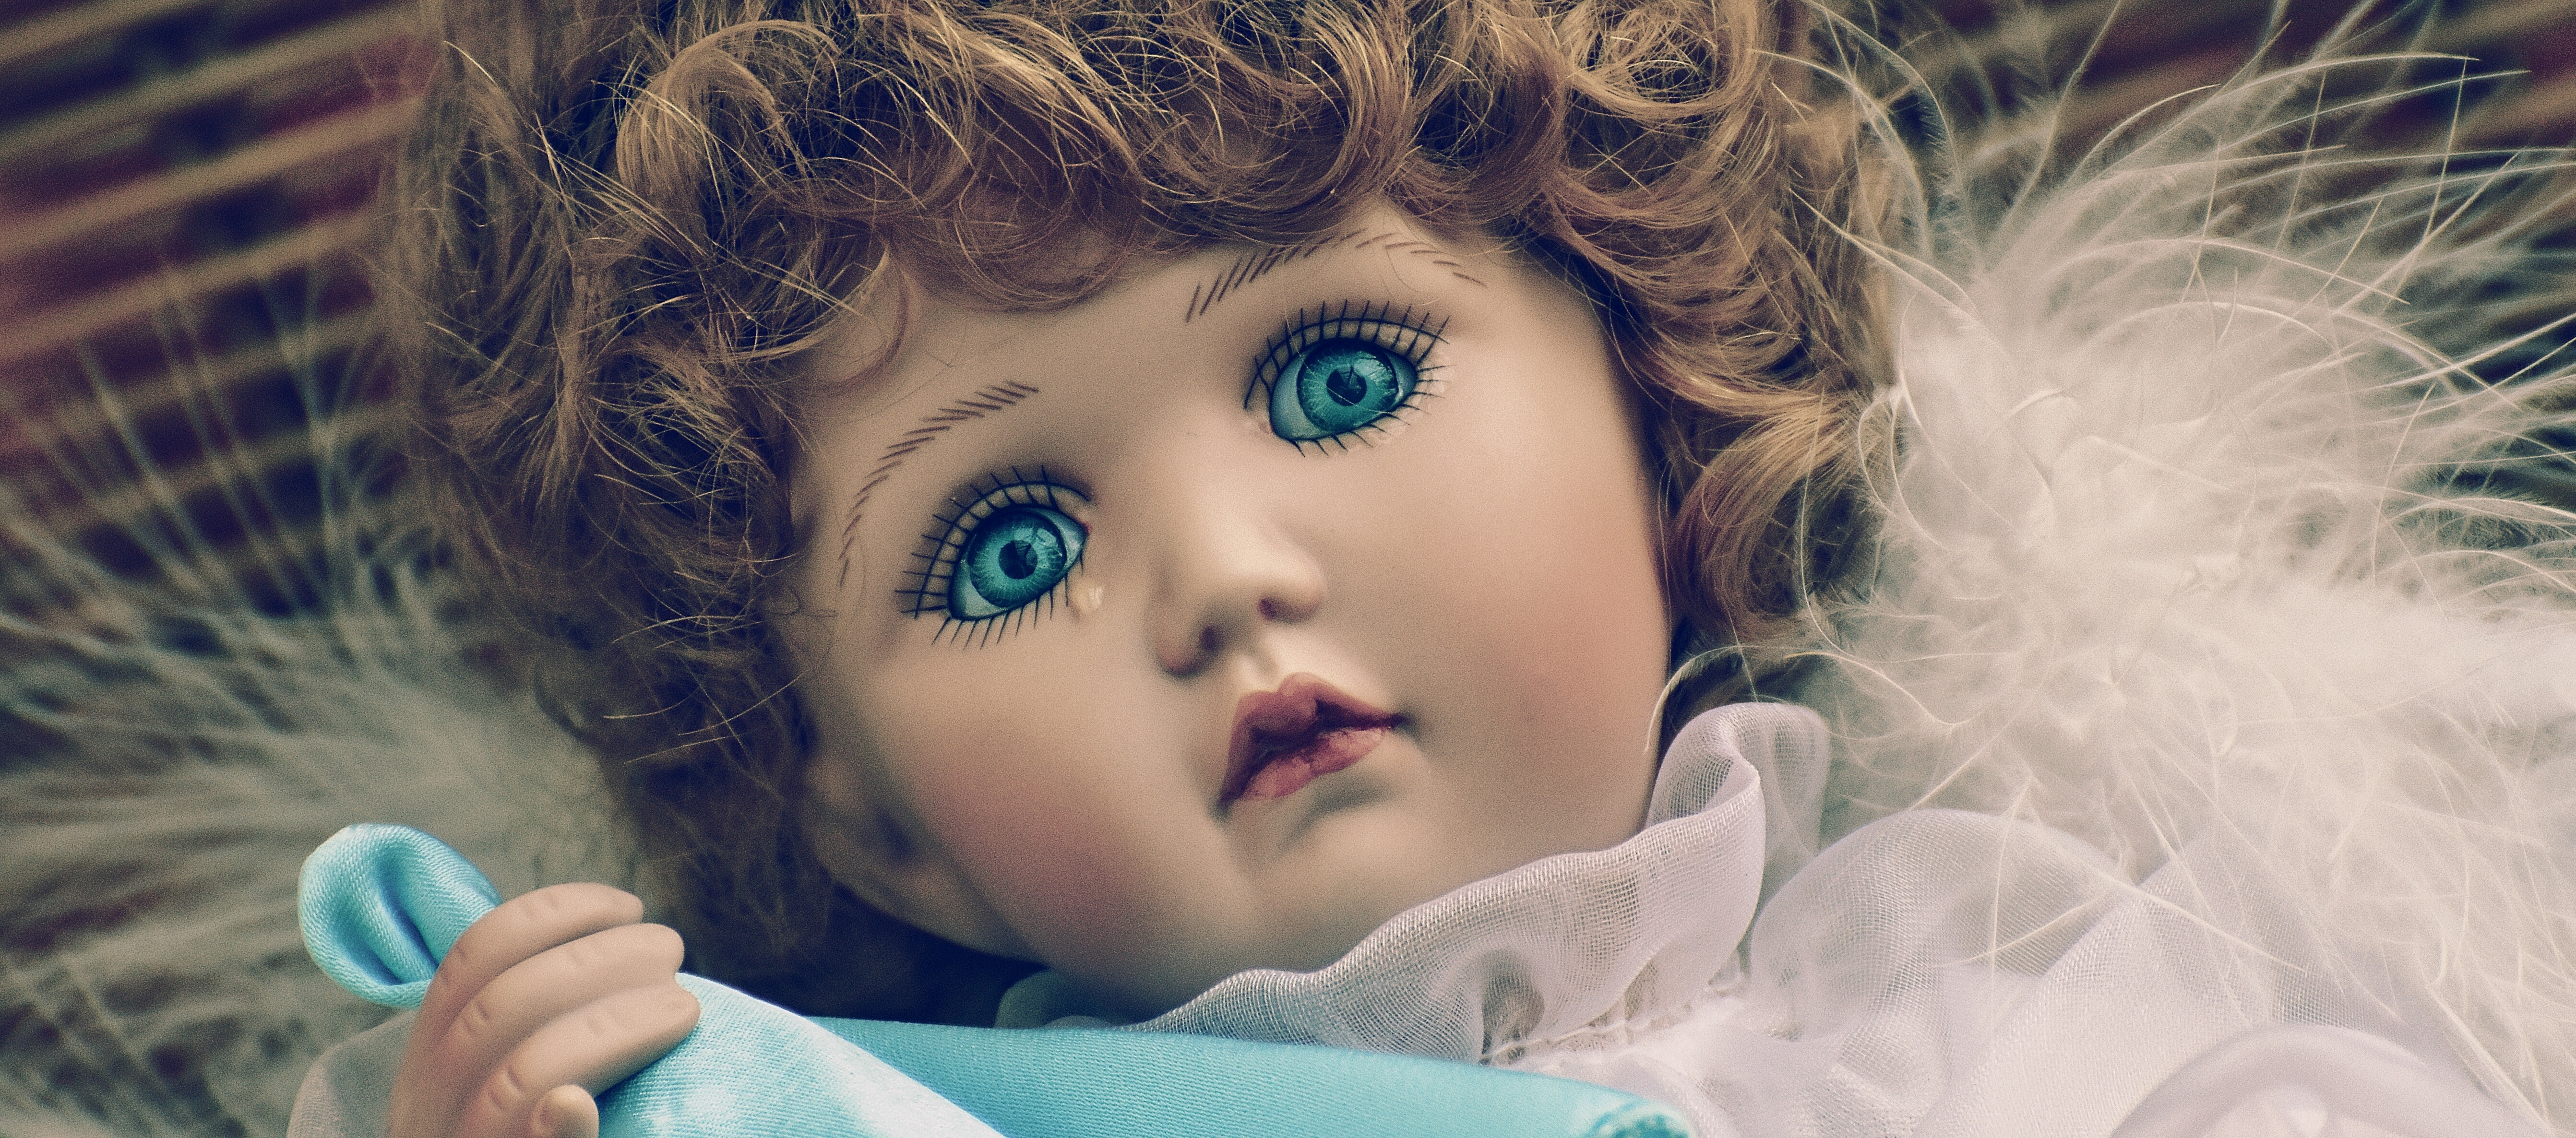 53 Lovely Doll Images Pexels Free Stock Photos